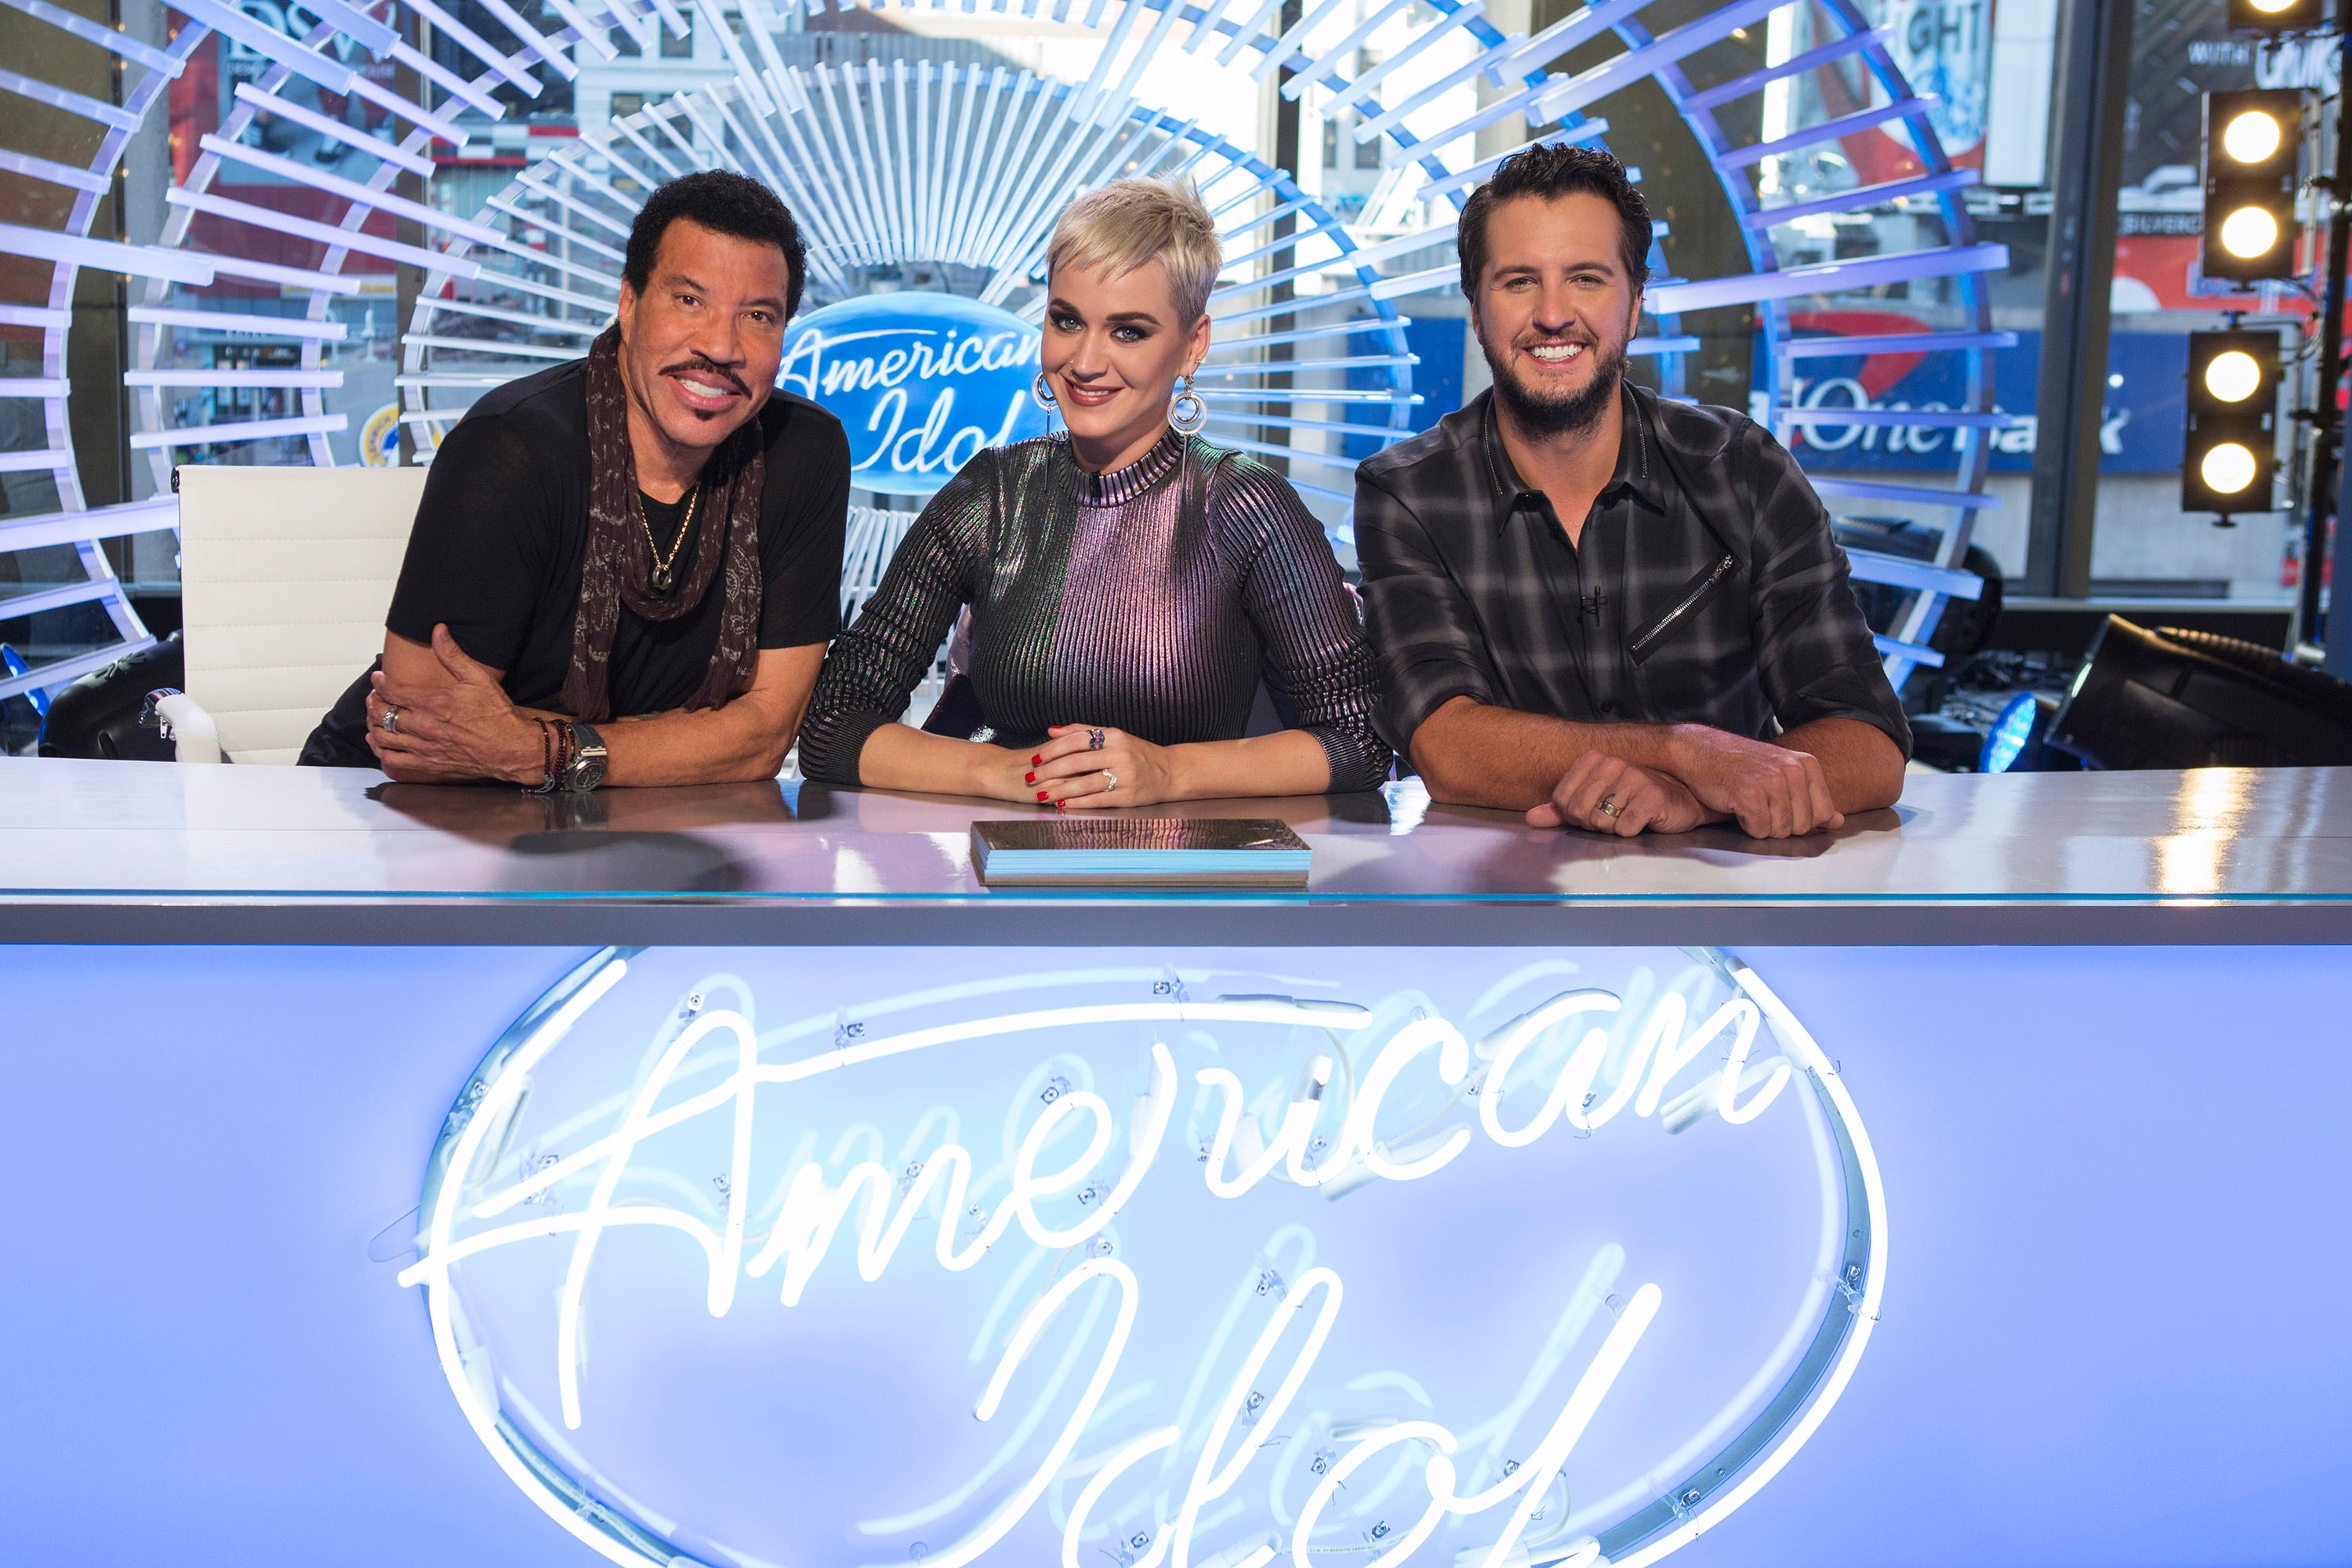 'American Idol': Judges say this guy has 'one of the most unique voices we've ever heard'